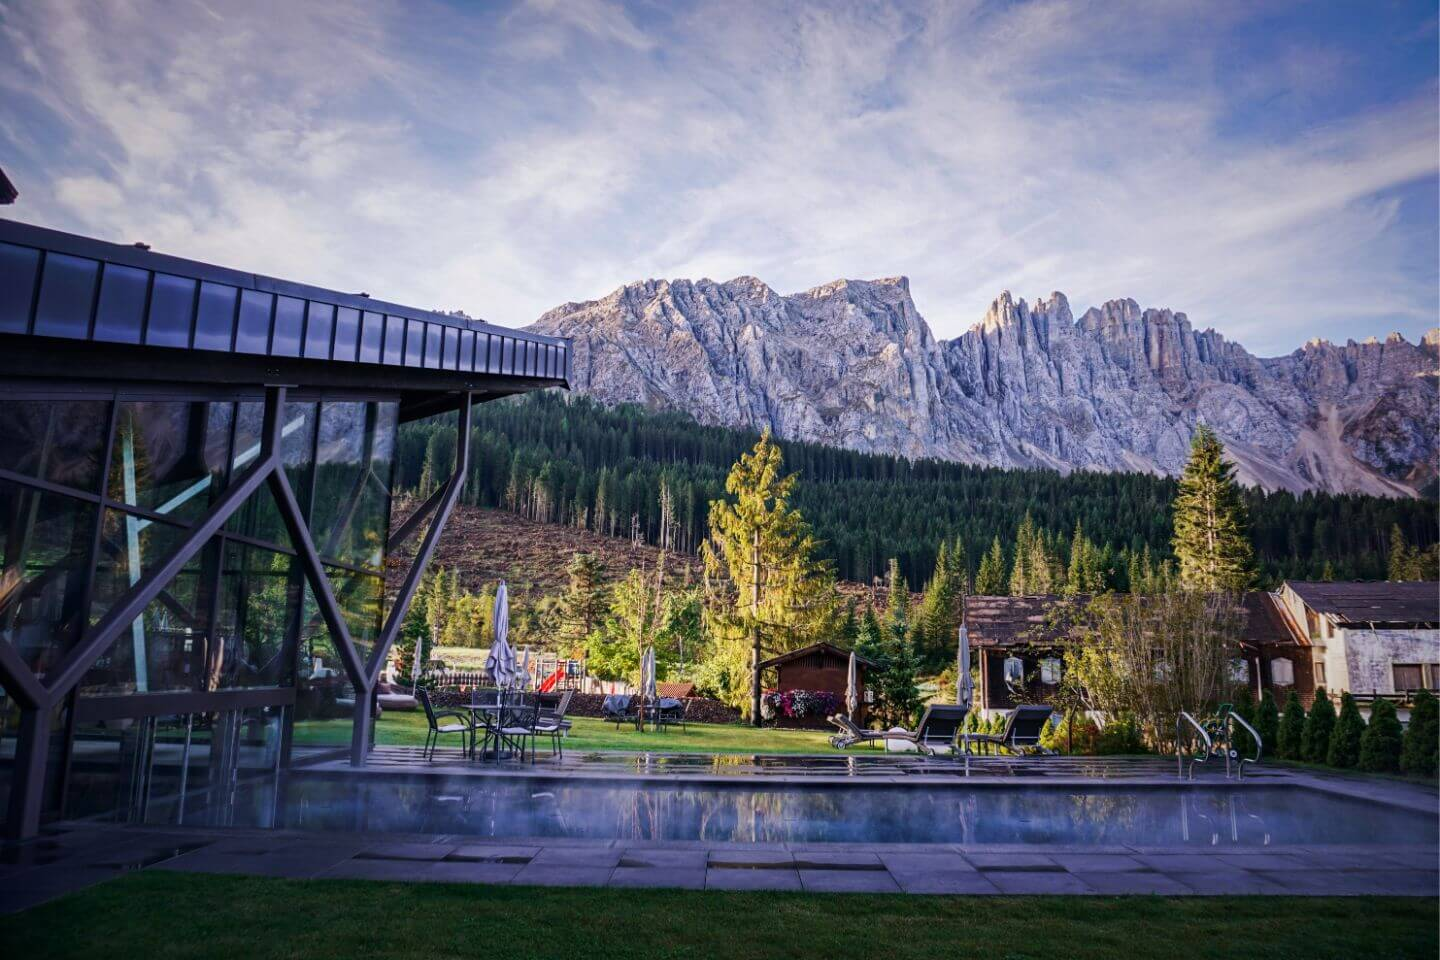 Sporthotel Alpenrose, Carezza, Eggental - Where to Stay in the Dolomites in Summer